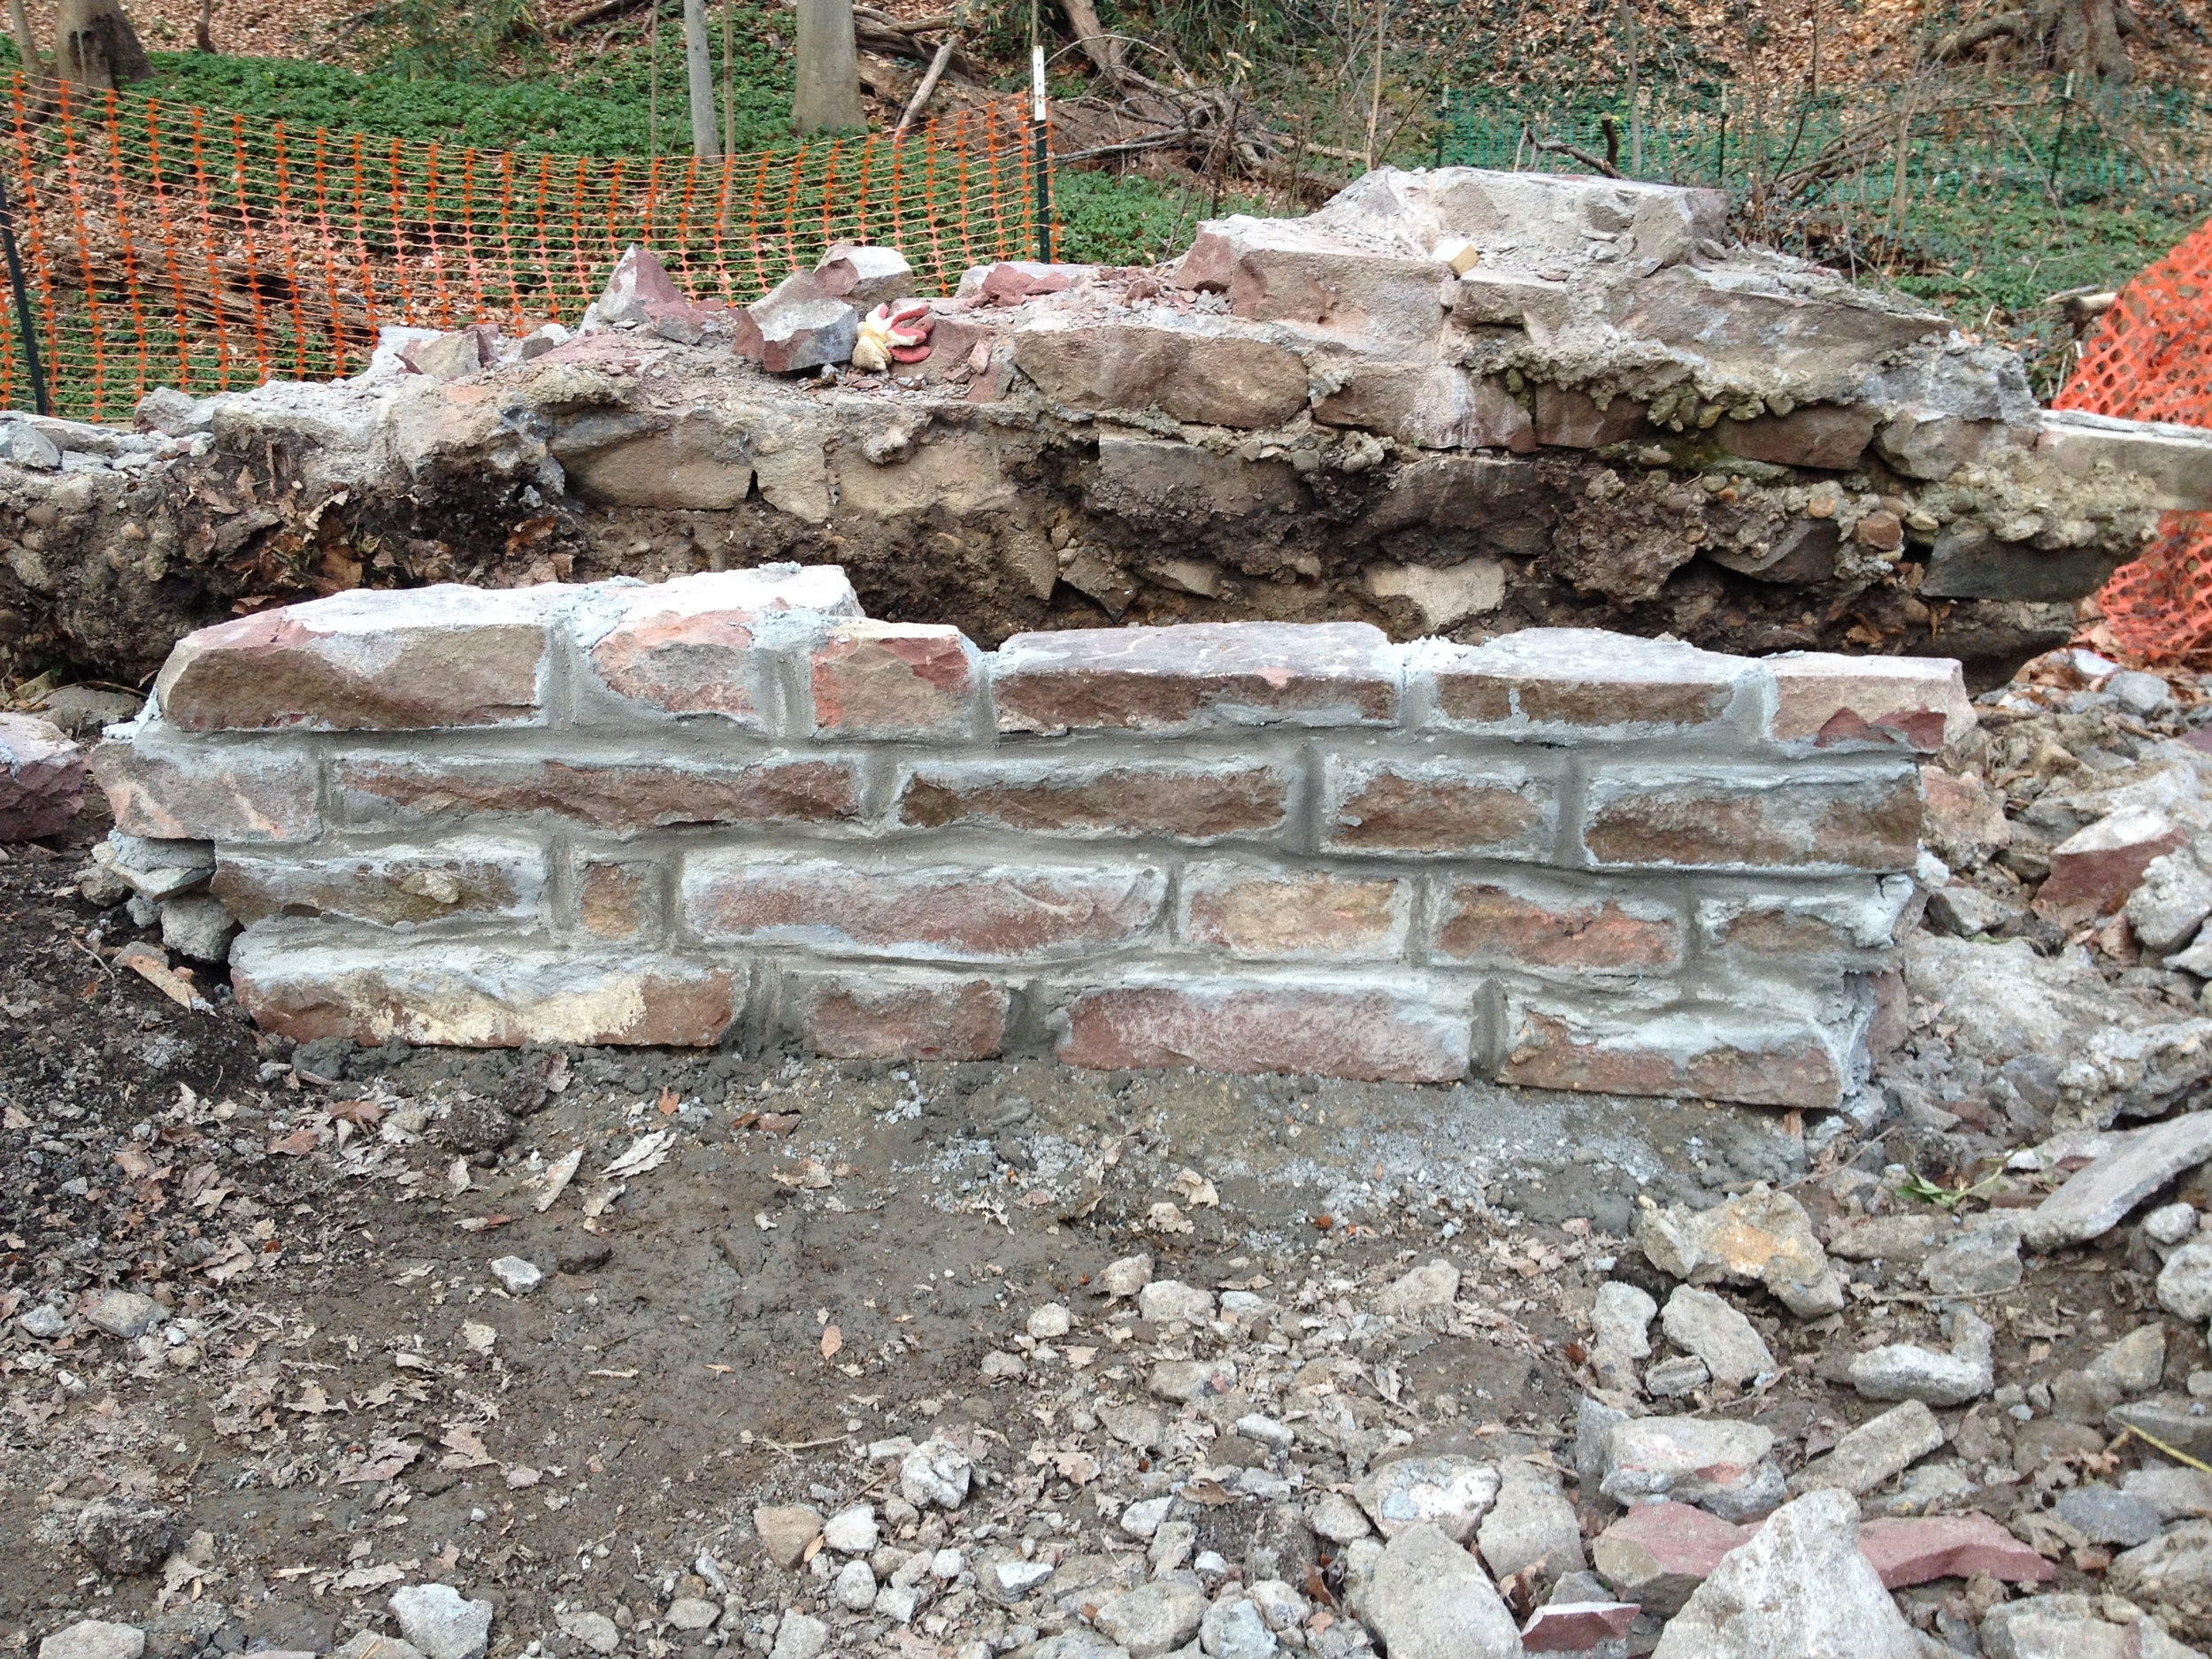 The masonry wall facade will be constructed with stone salvaged from historic retaining walls along Klingle Creek that collapsed.